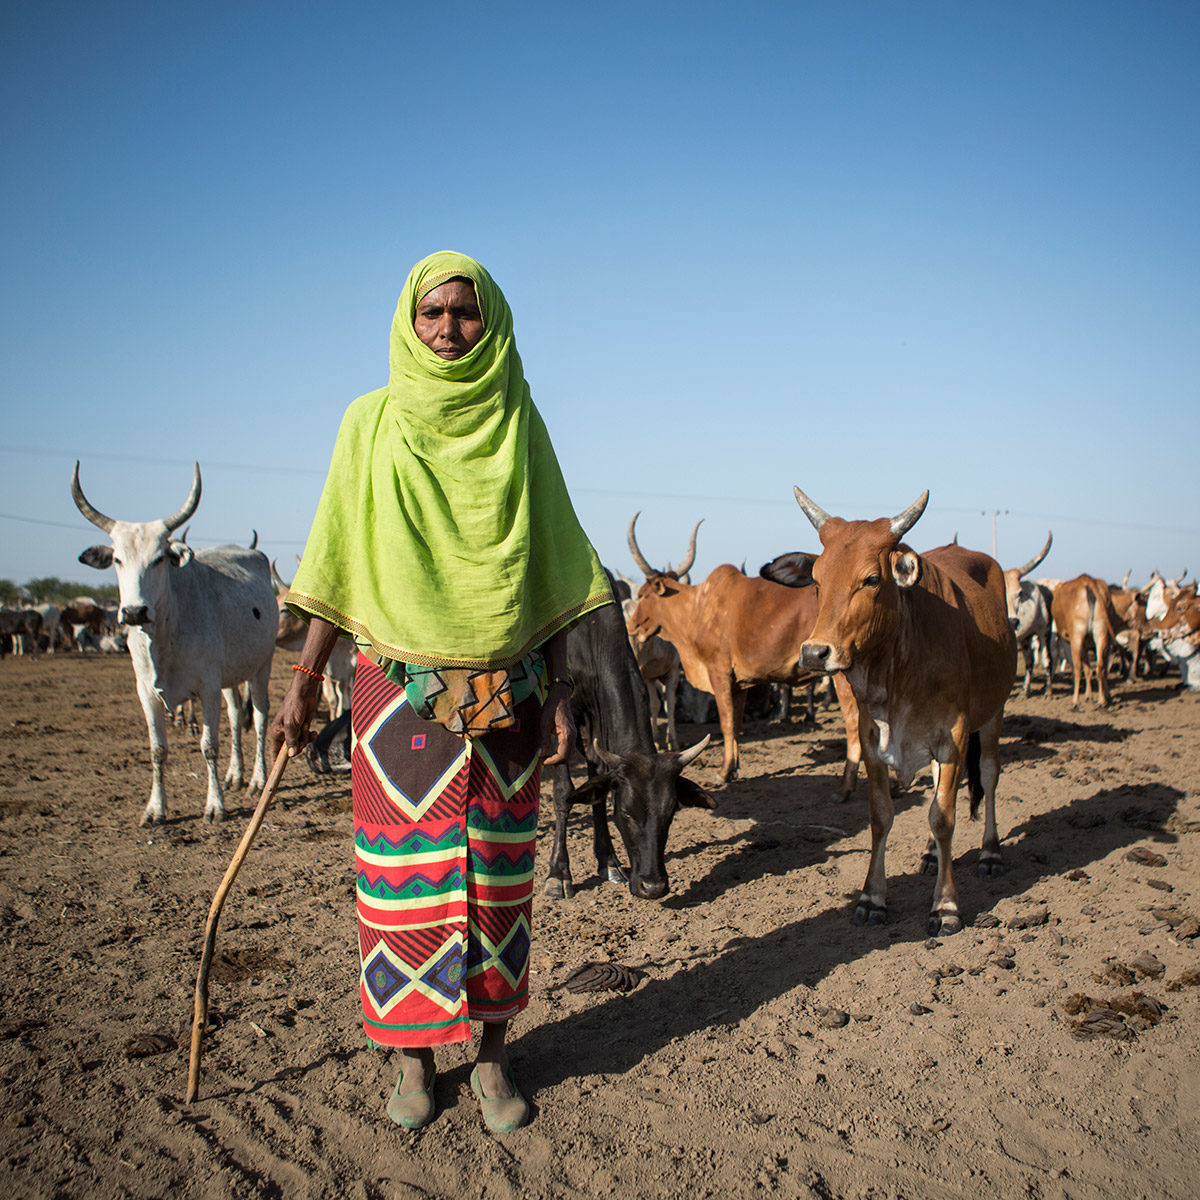 A cow herder in Ethiopia